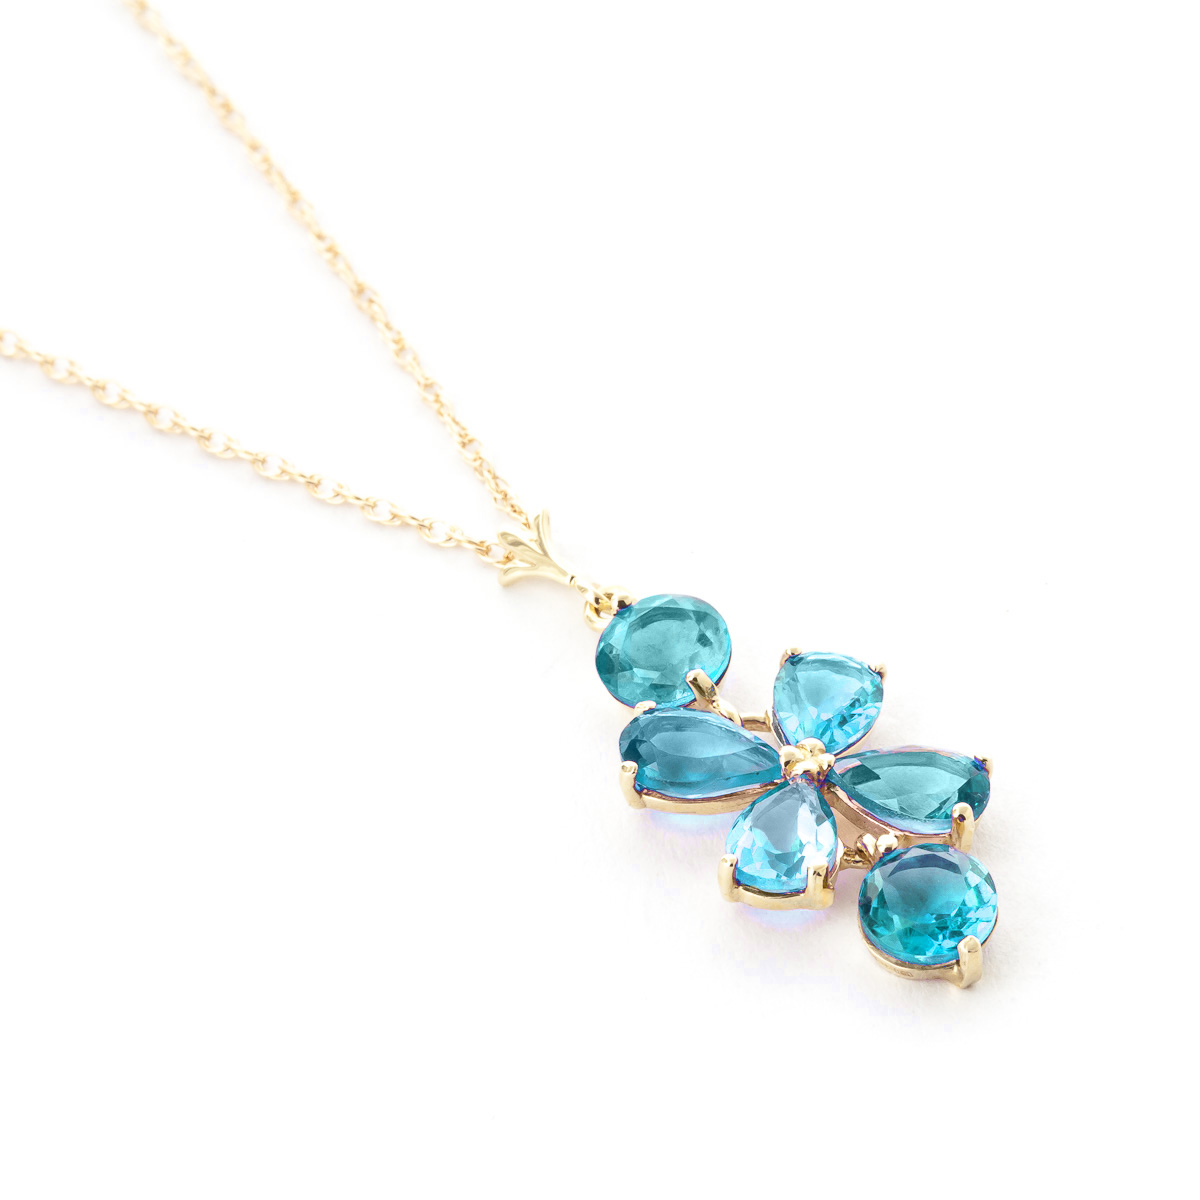 Blue Topaz Blossom Pendant Necklace 3.15ctw in 9ct Gold